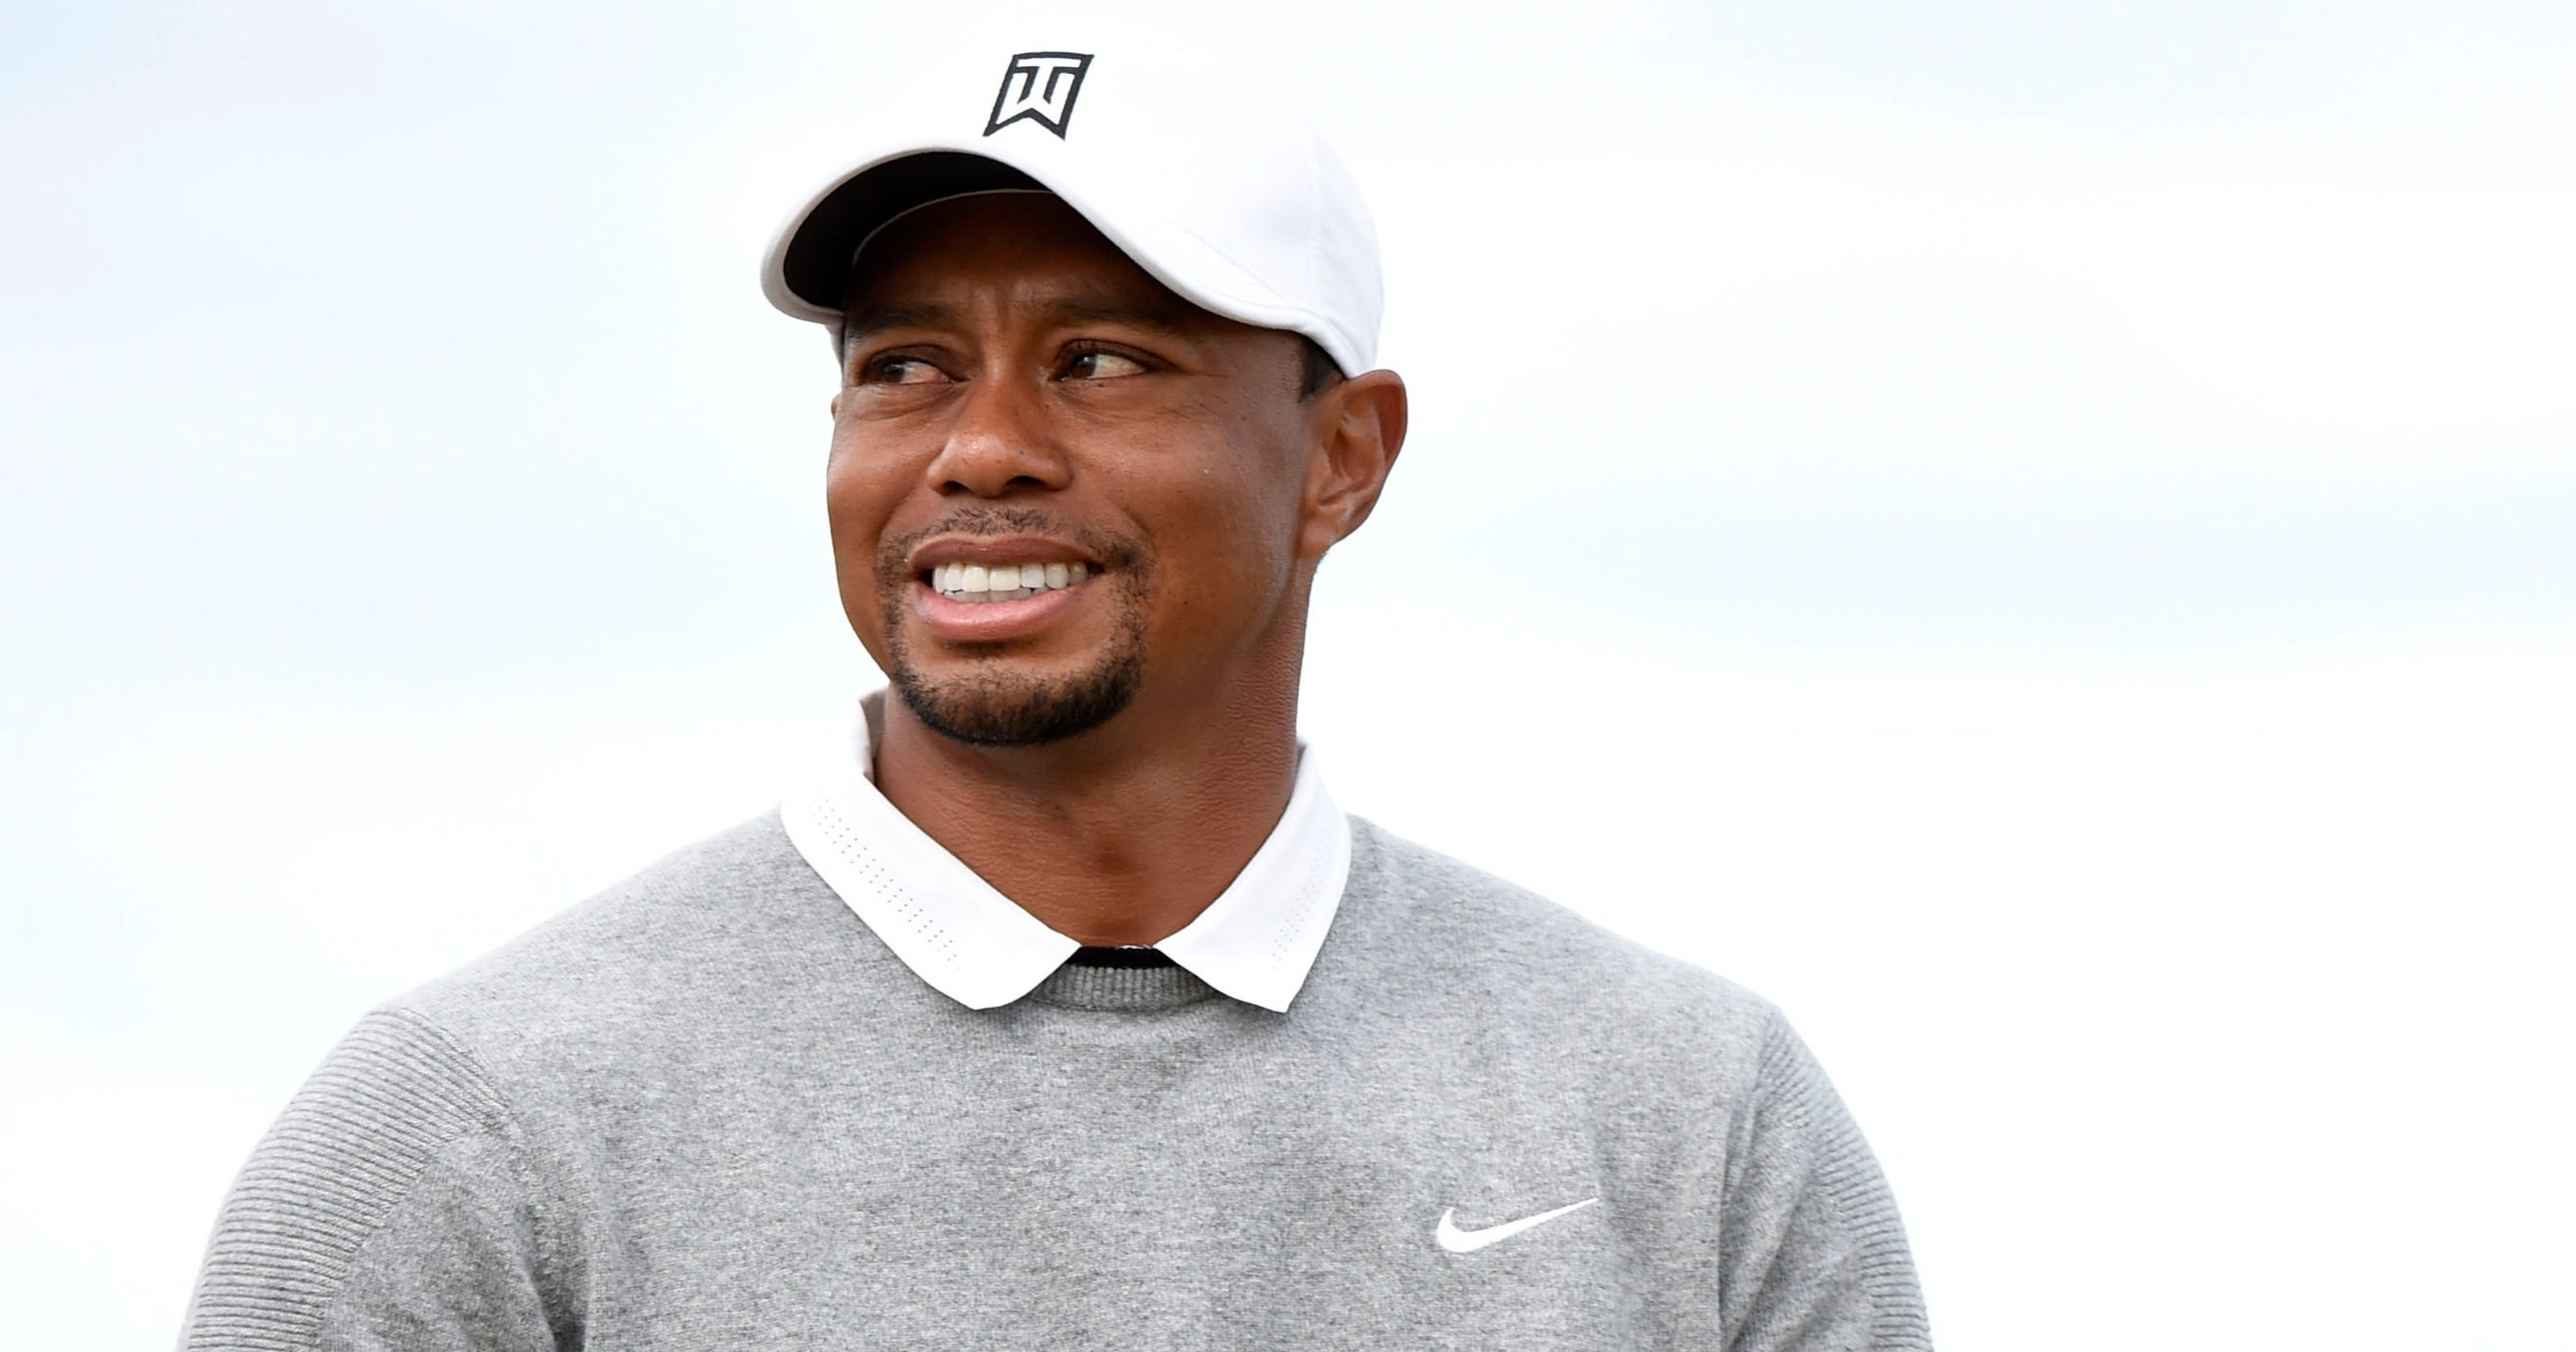 Tiger Woods misses cut at U.S. Open after shooting 76